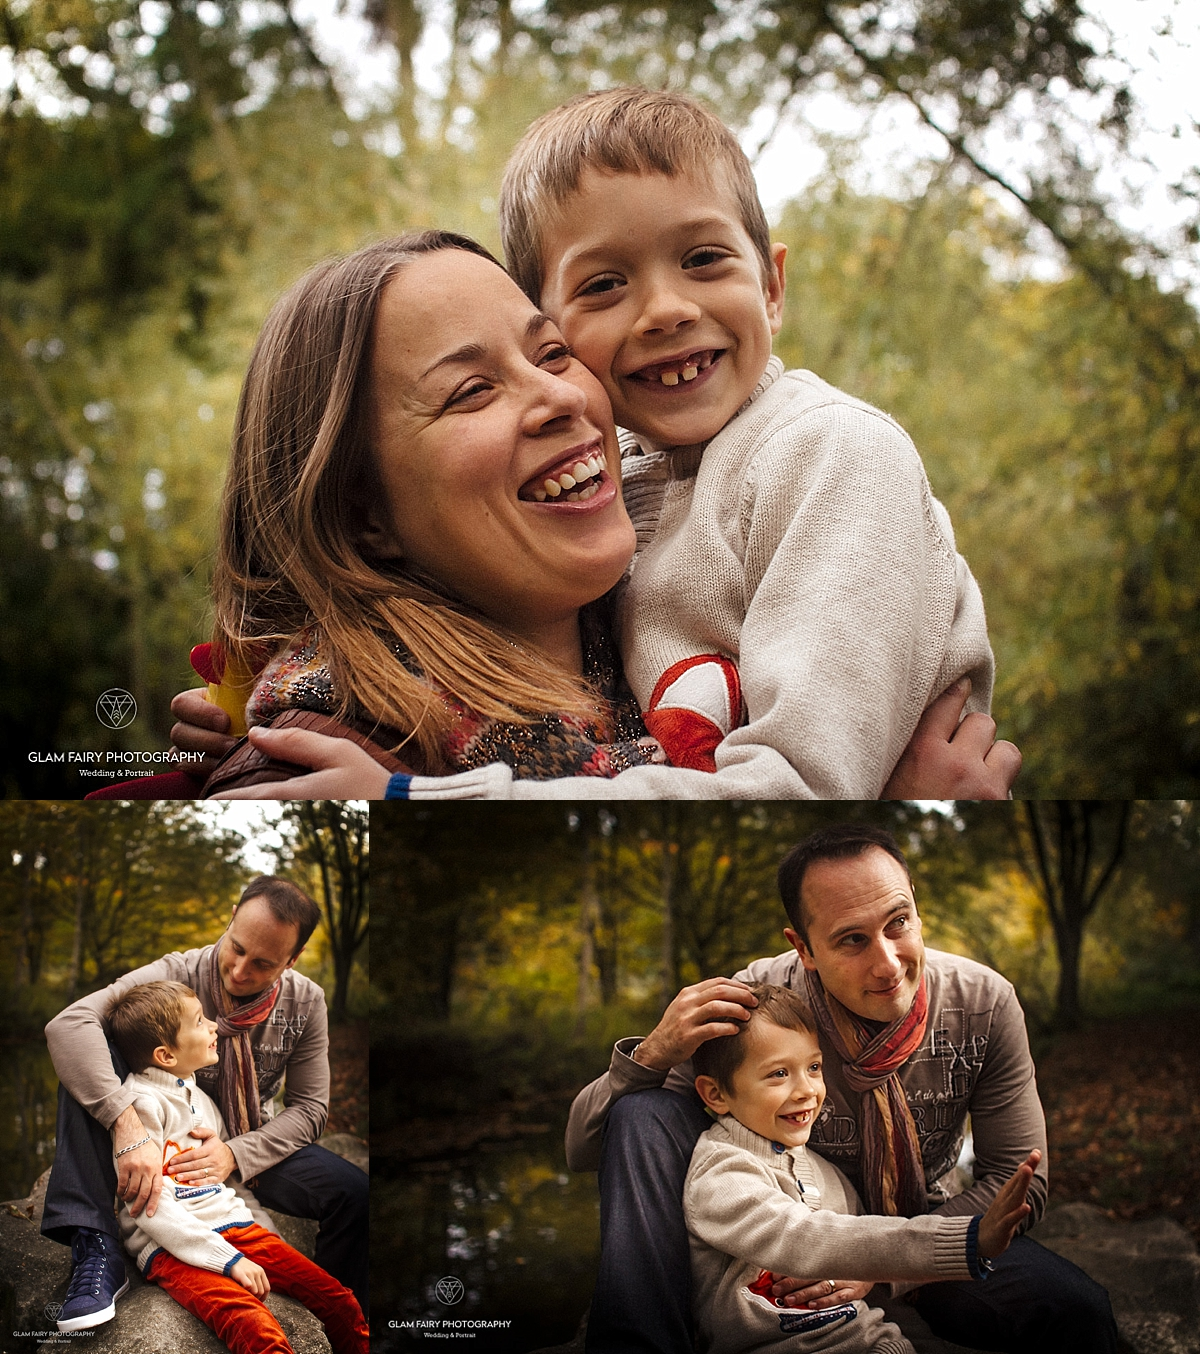 GlamFairyPhotography-mini-session-en-famille-a-vincennes-cecile_0002